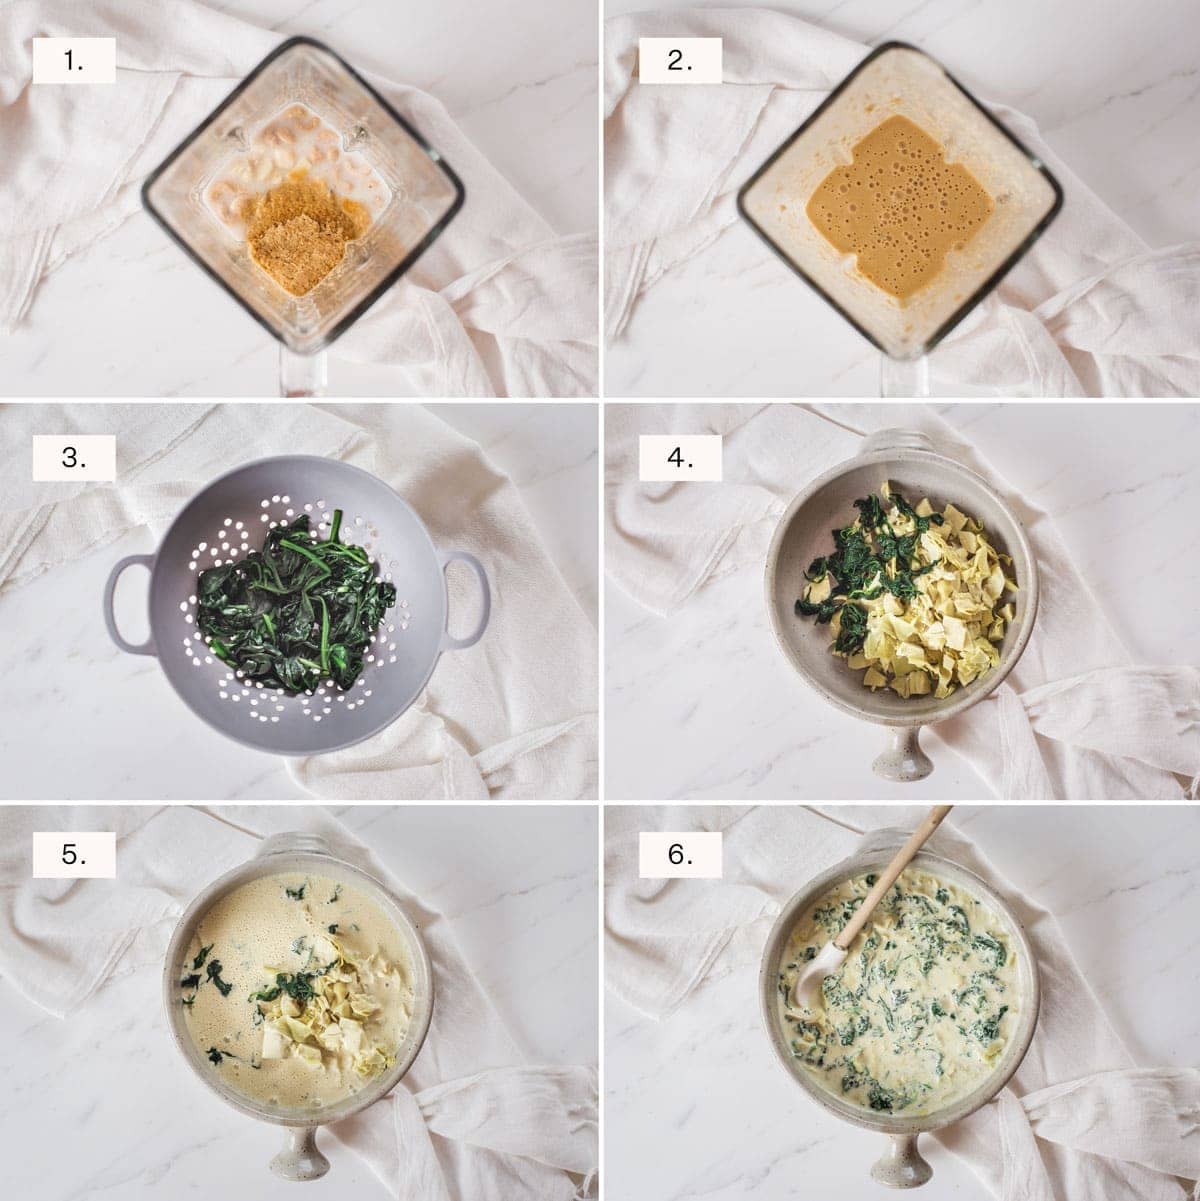 Step by step photos for making spinach artichoke dip